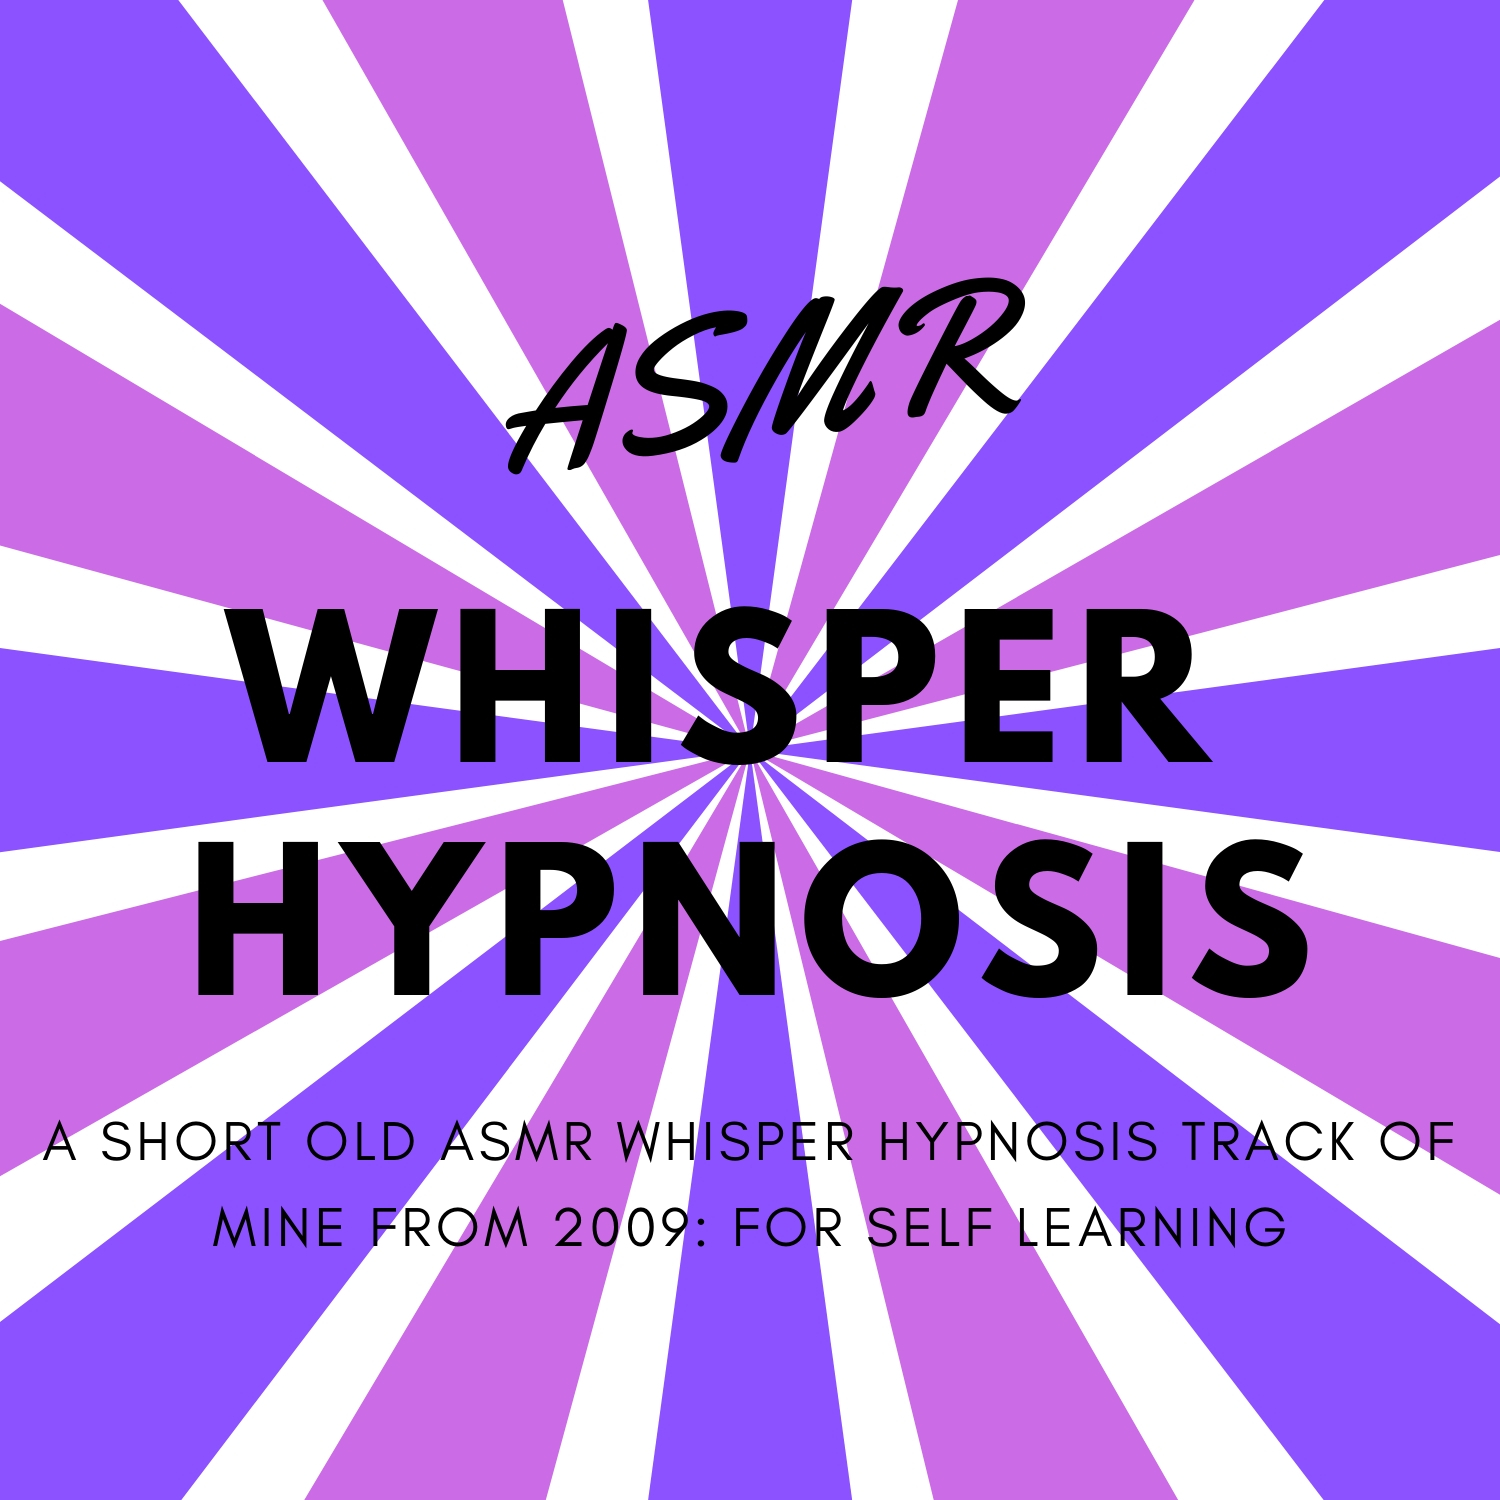 ASMR Whisper Hypnosis (Male British Voice) for Self Learning